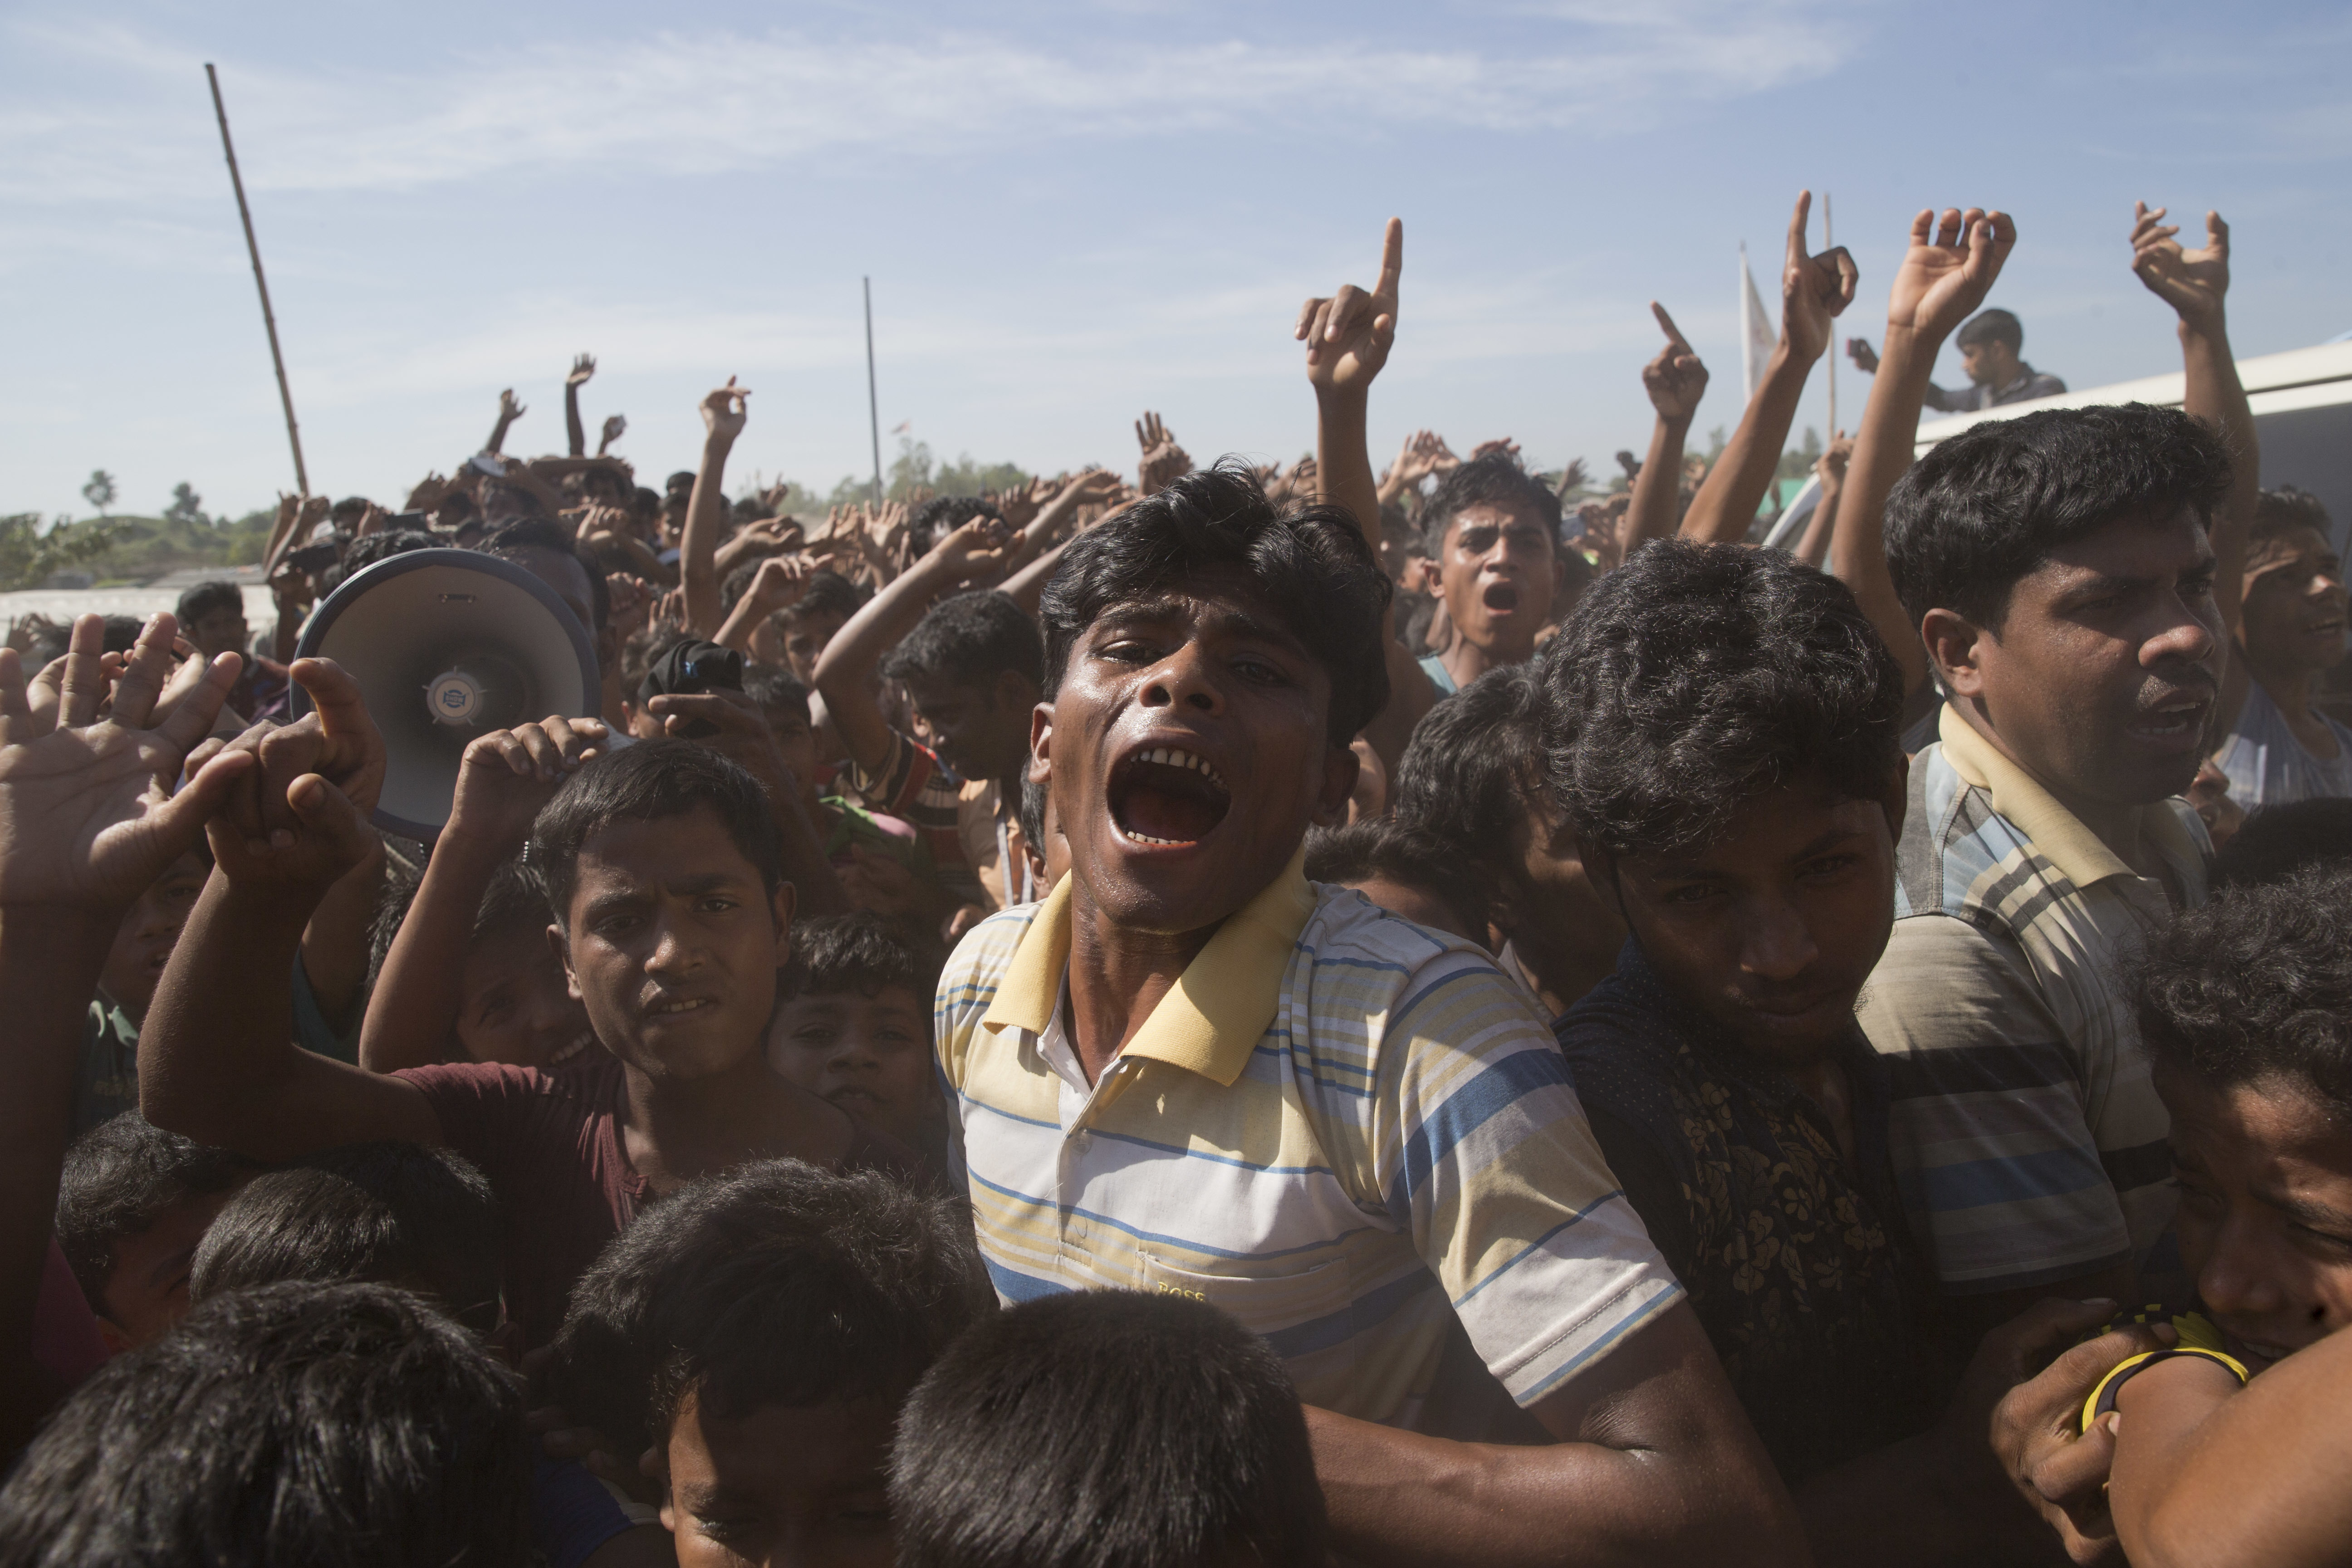 Rohingya refugees shout slogans during a protest against the repatriation process at Unchiprang refugee camp near Cox's Bazar, in Bangladesh, Thursday, Nov. 15, 2018. The head of Bangladesh's refugee commission said plans to begin a voluntary repatriation of Rohingya Muslim refugees to their native Myanmar on Thursday were scrapped after officials were unable to find anyone who wanted to return. (AP Photo/Dar Yasin)